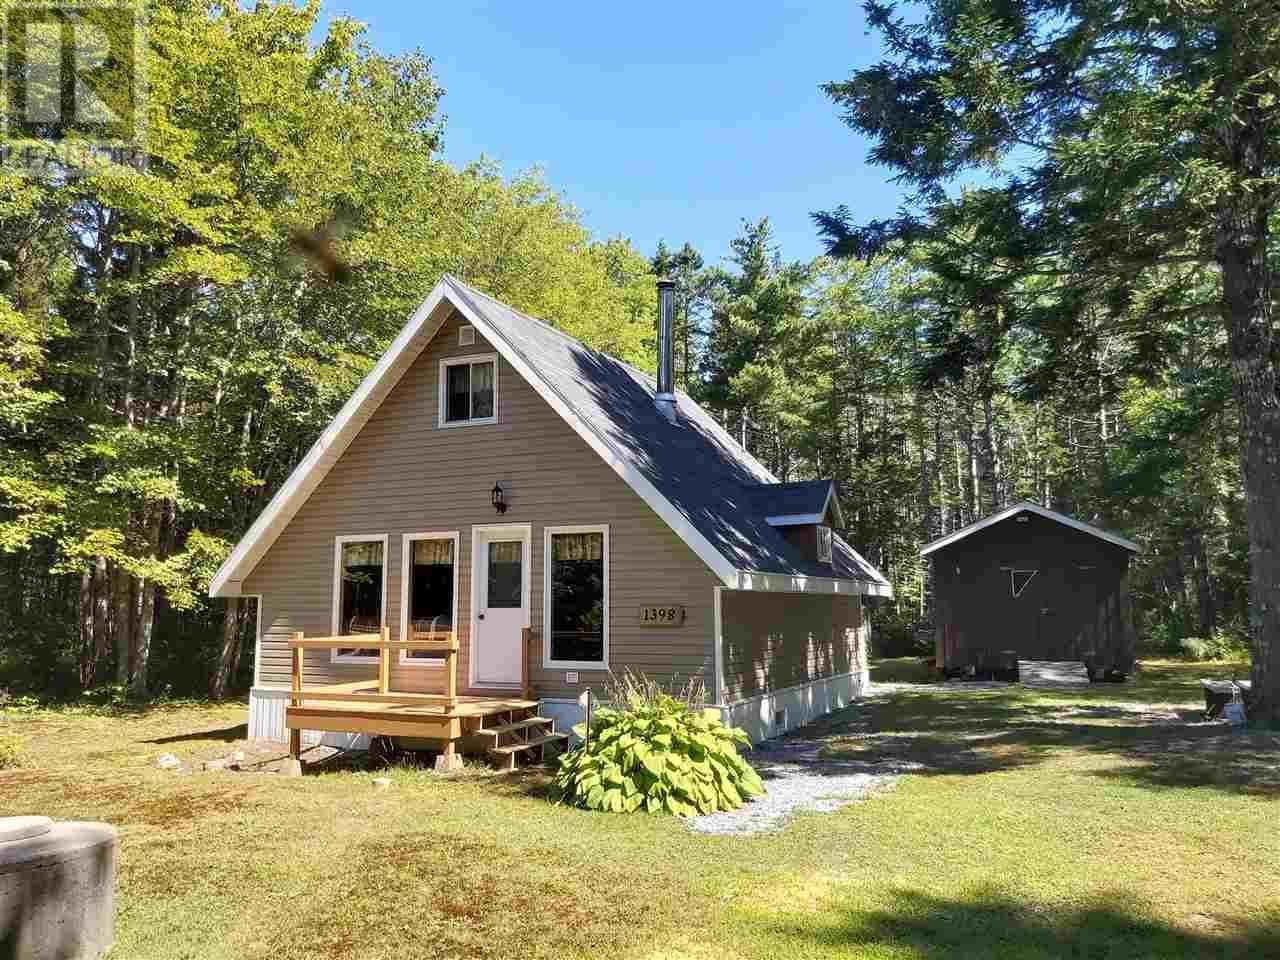 Residential property for sale at 1398 Canada Hill Rd Canada Hill Nova Scotia - MLS: 201922378